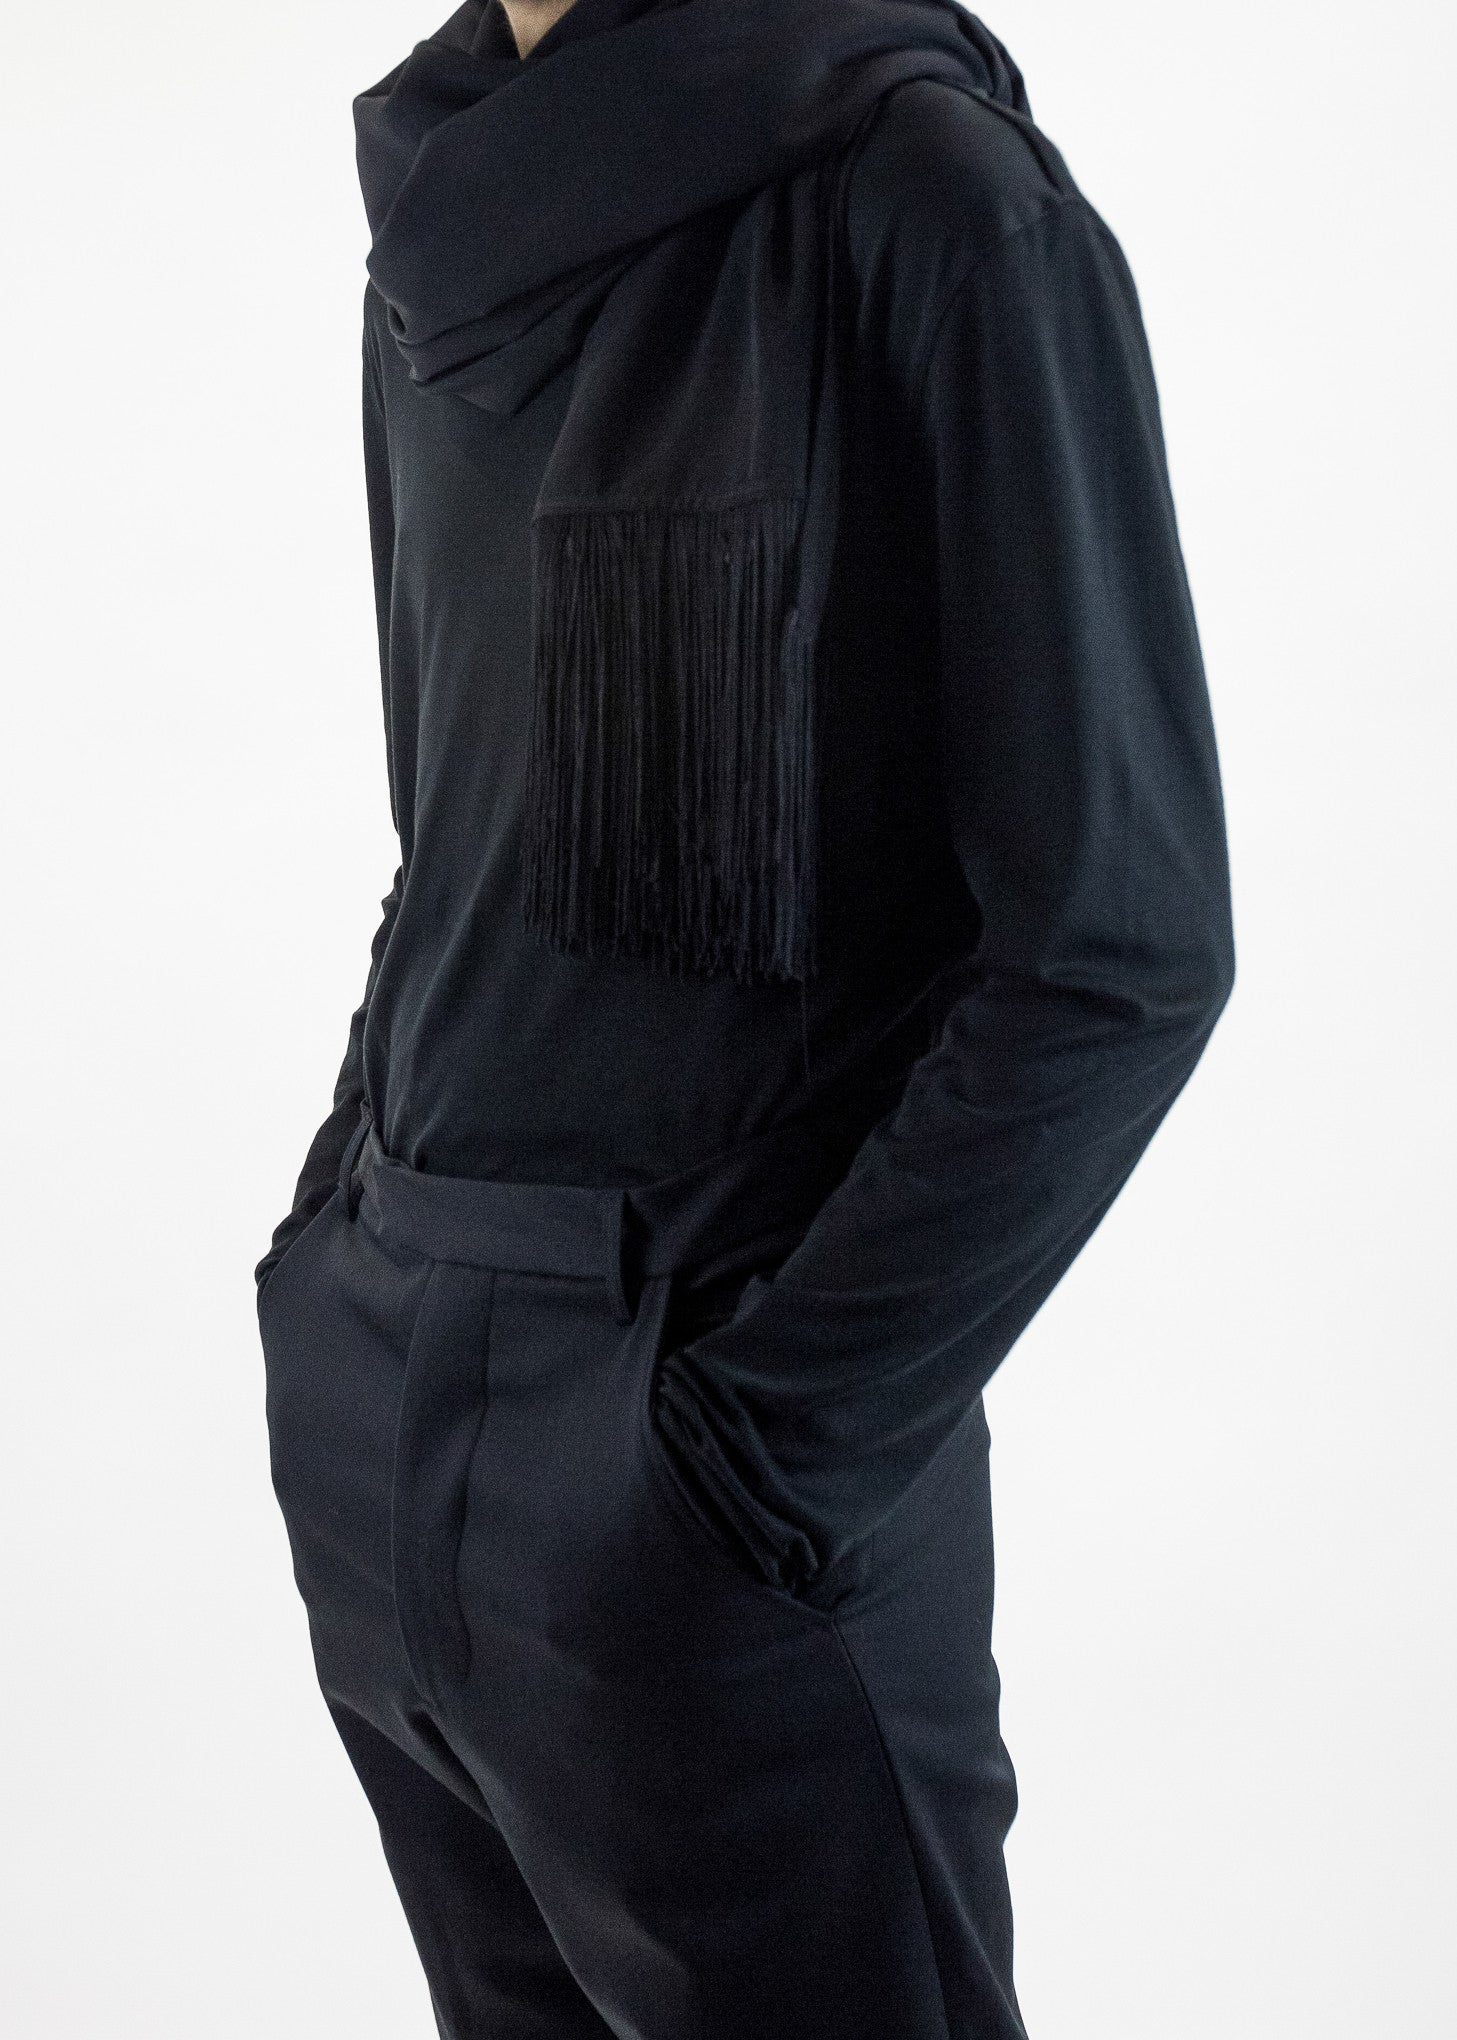 matthew miller Blake Scarf with Fringing